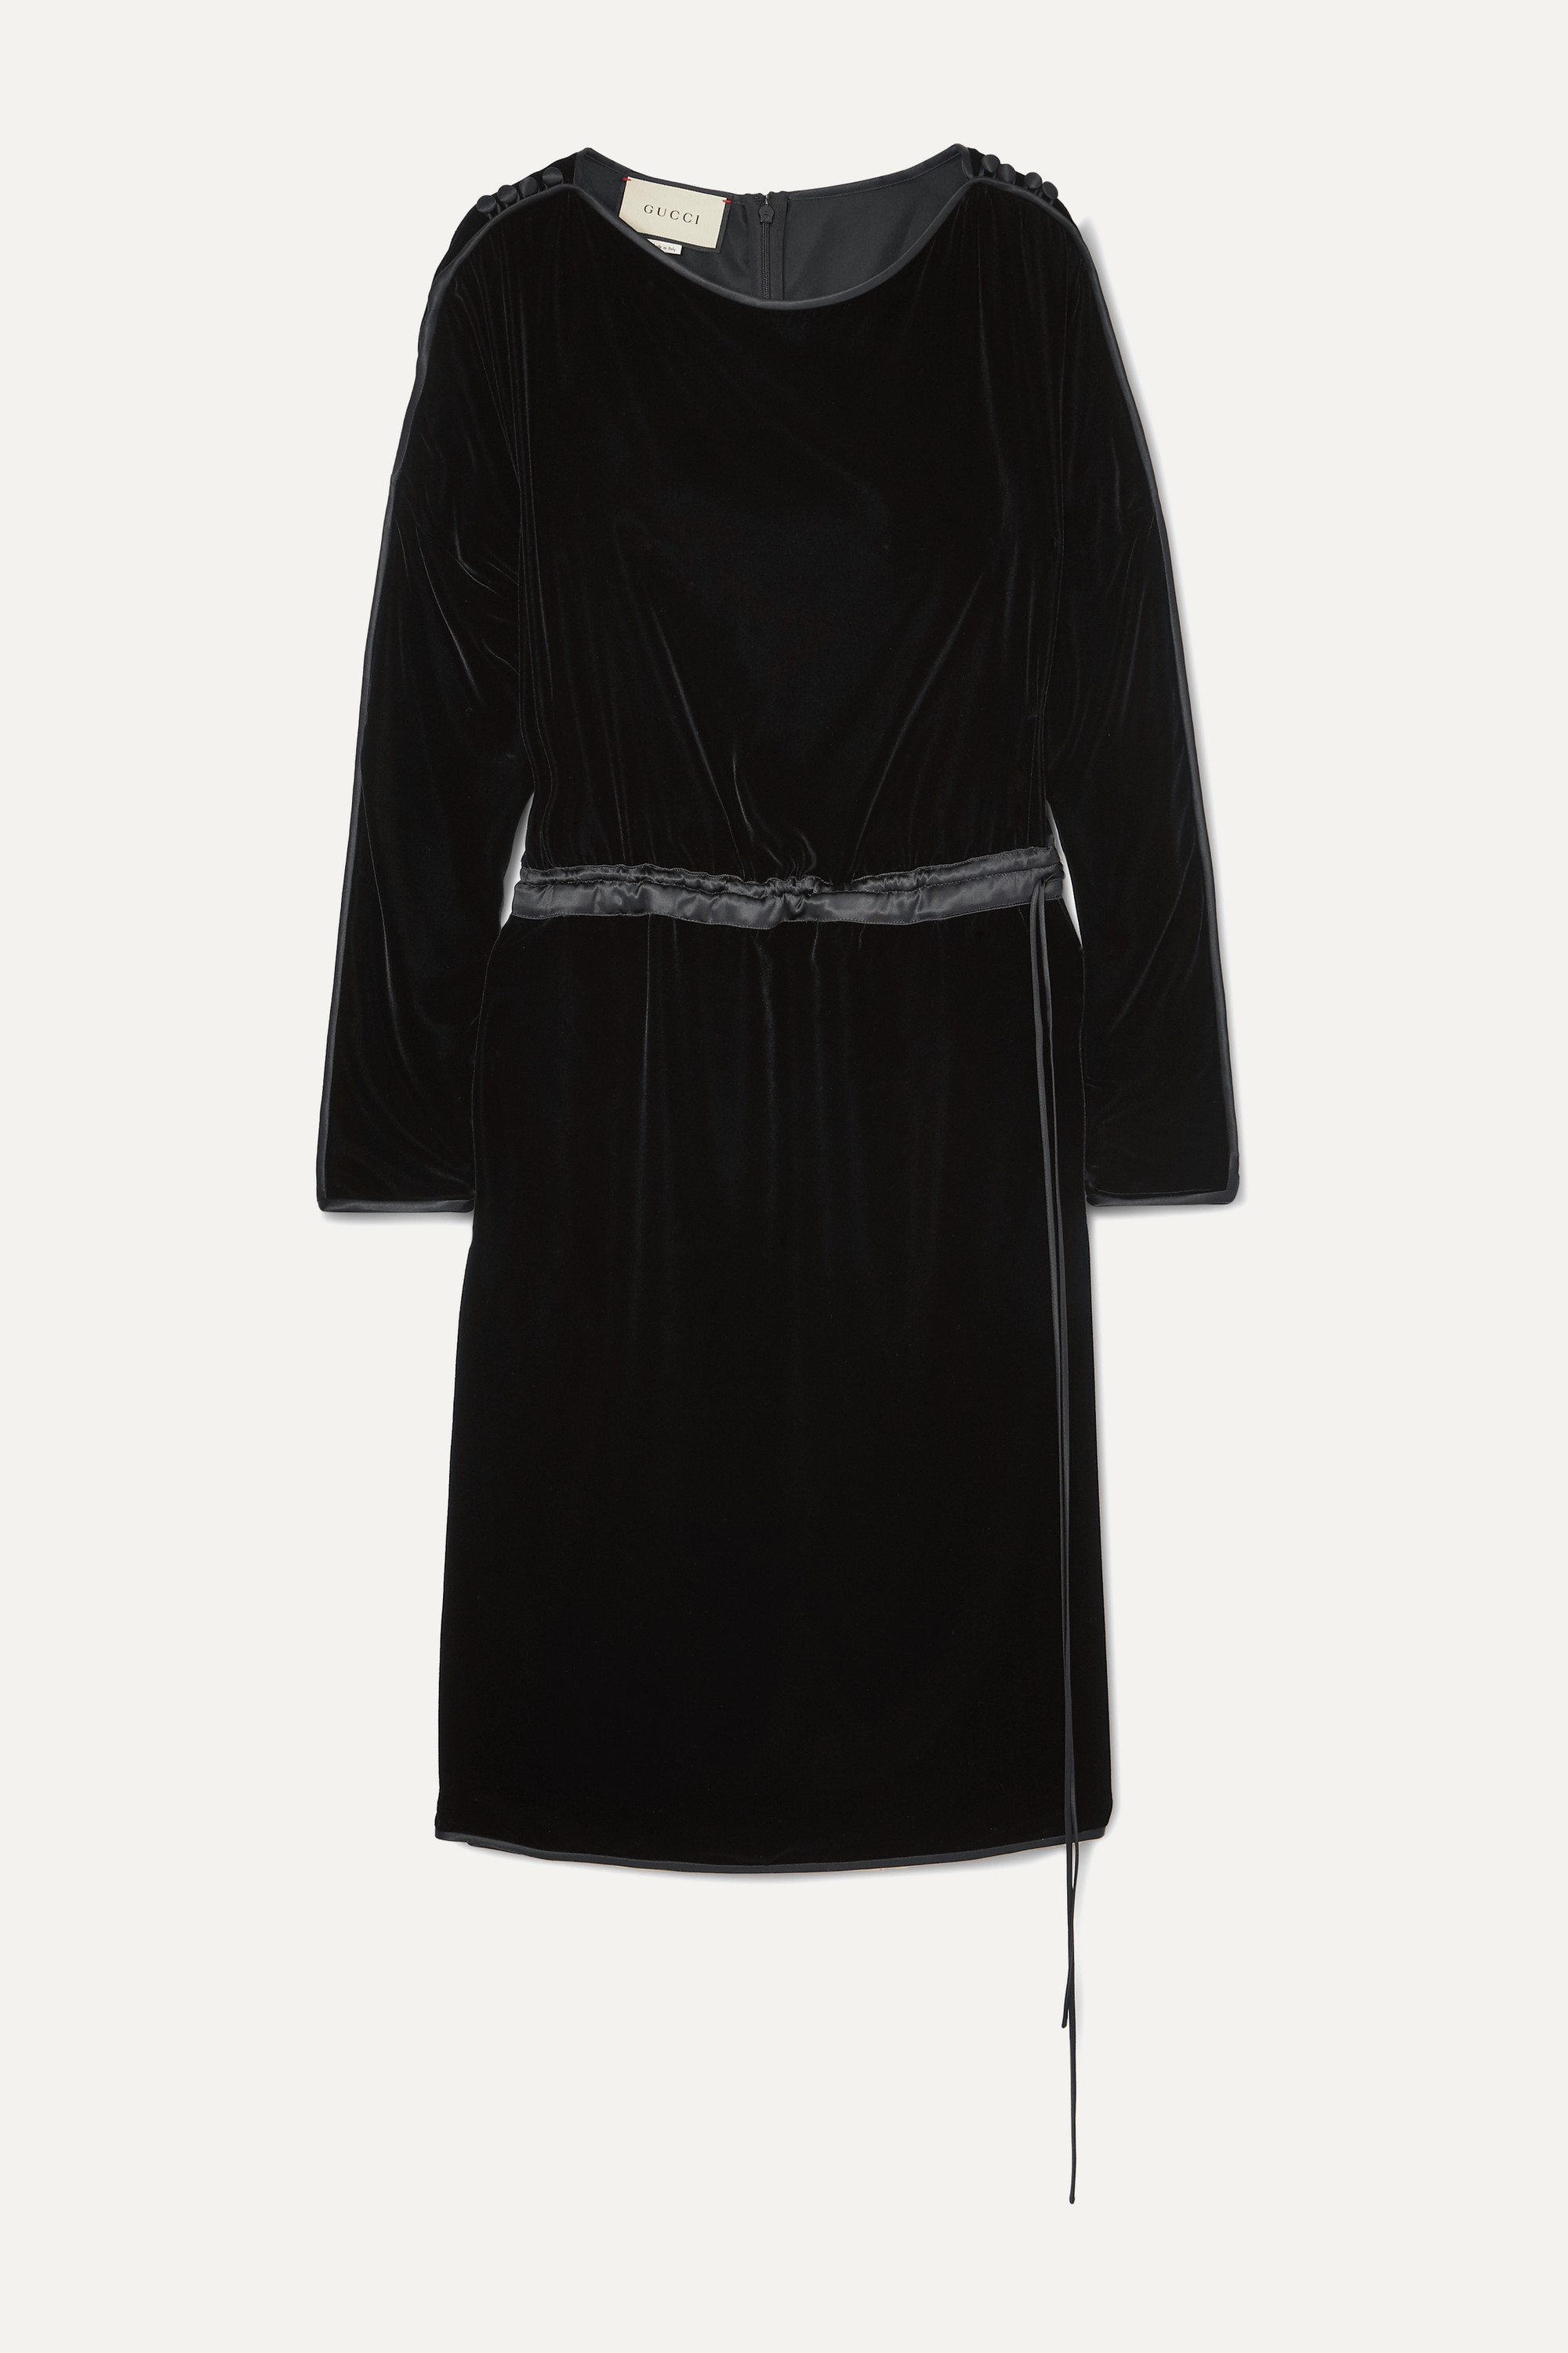 Gucci Satin-trimmed velvet midi dress